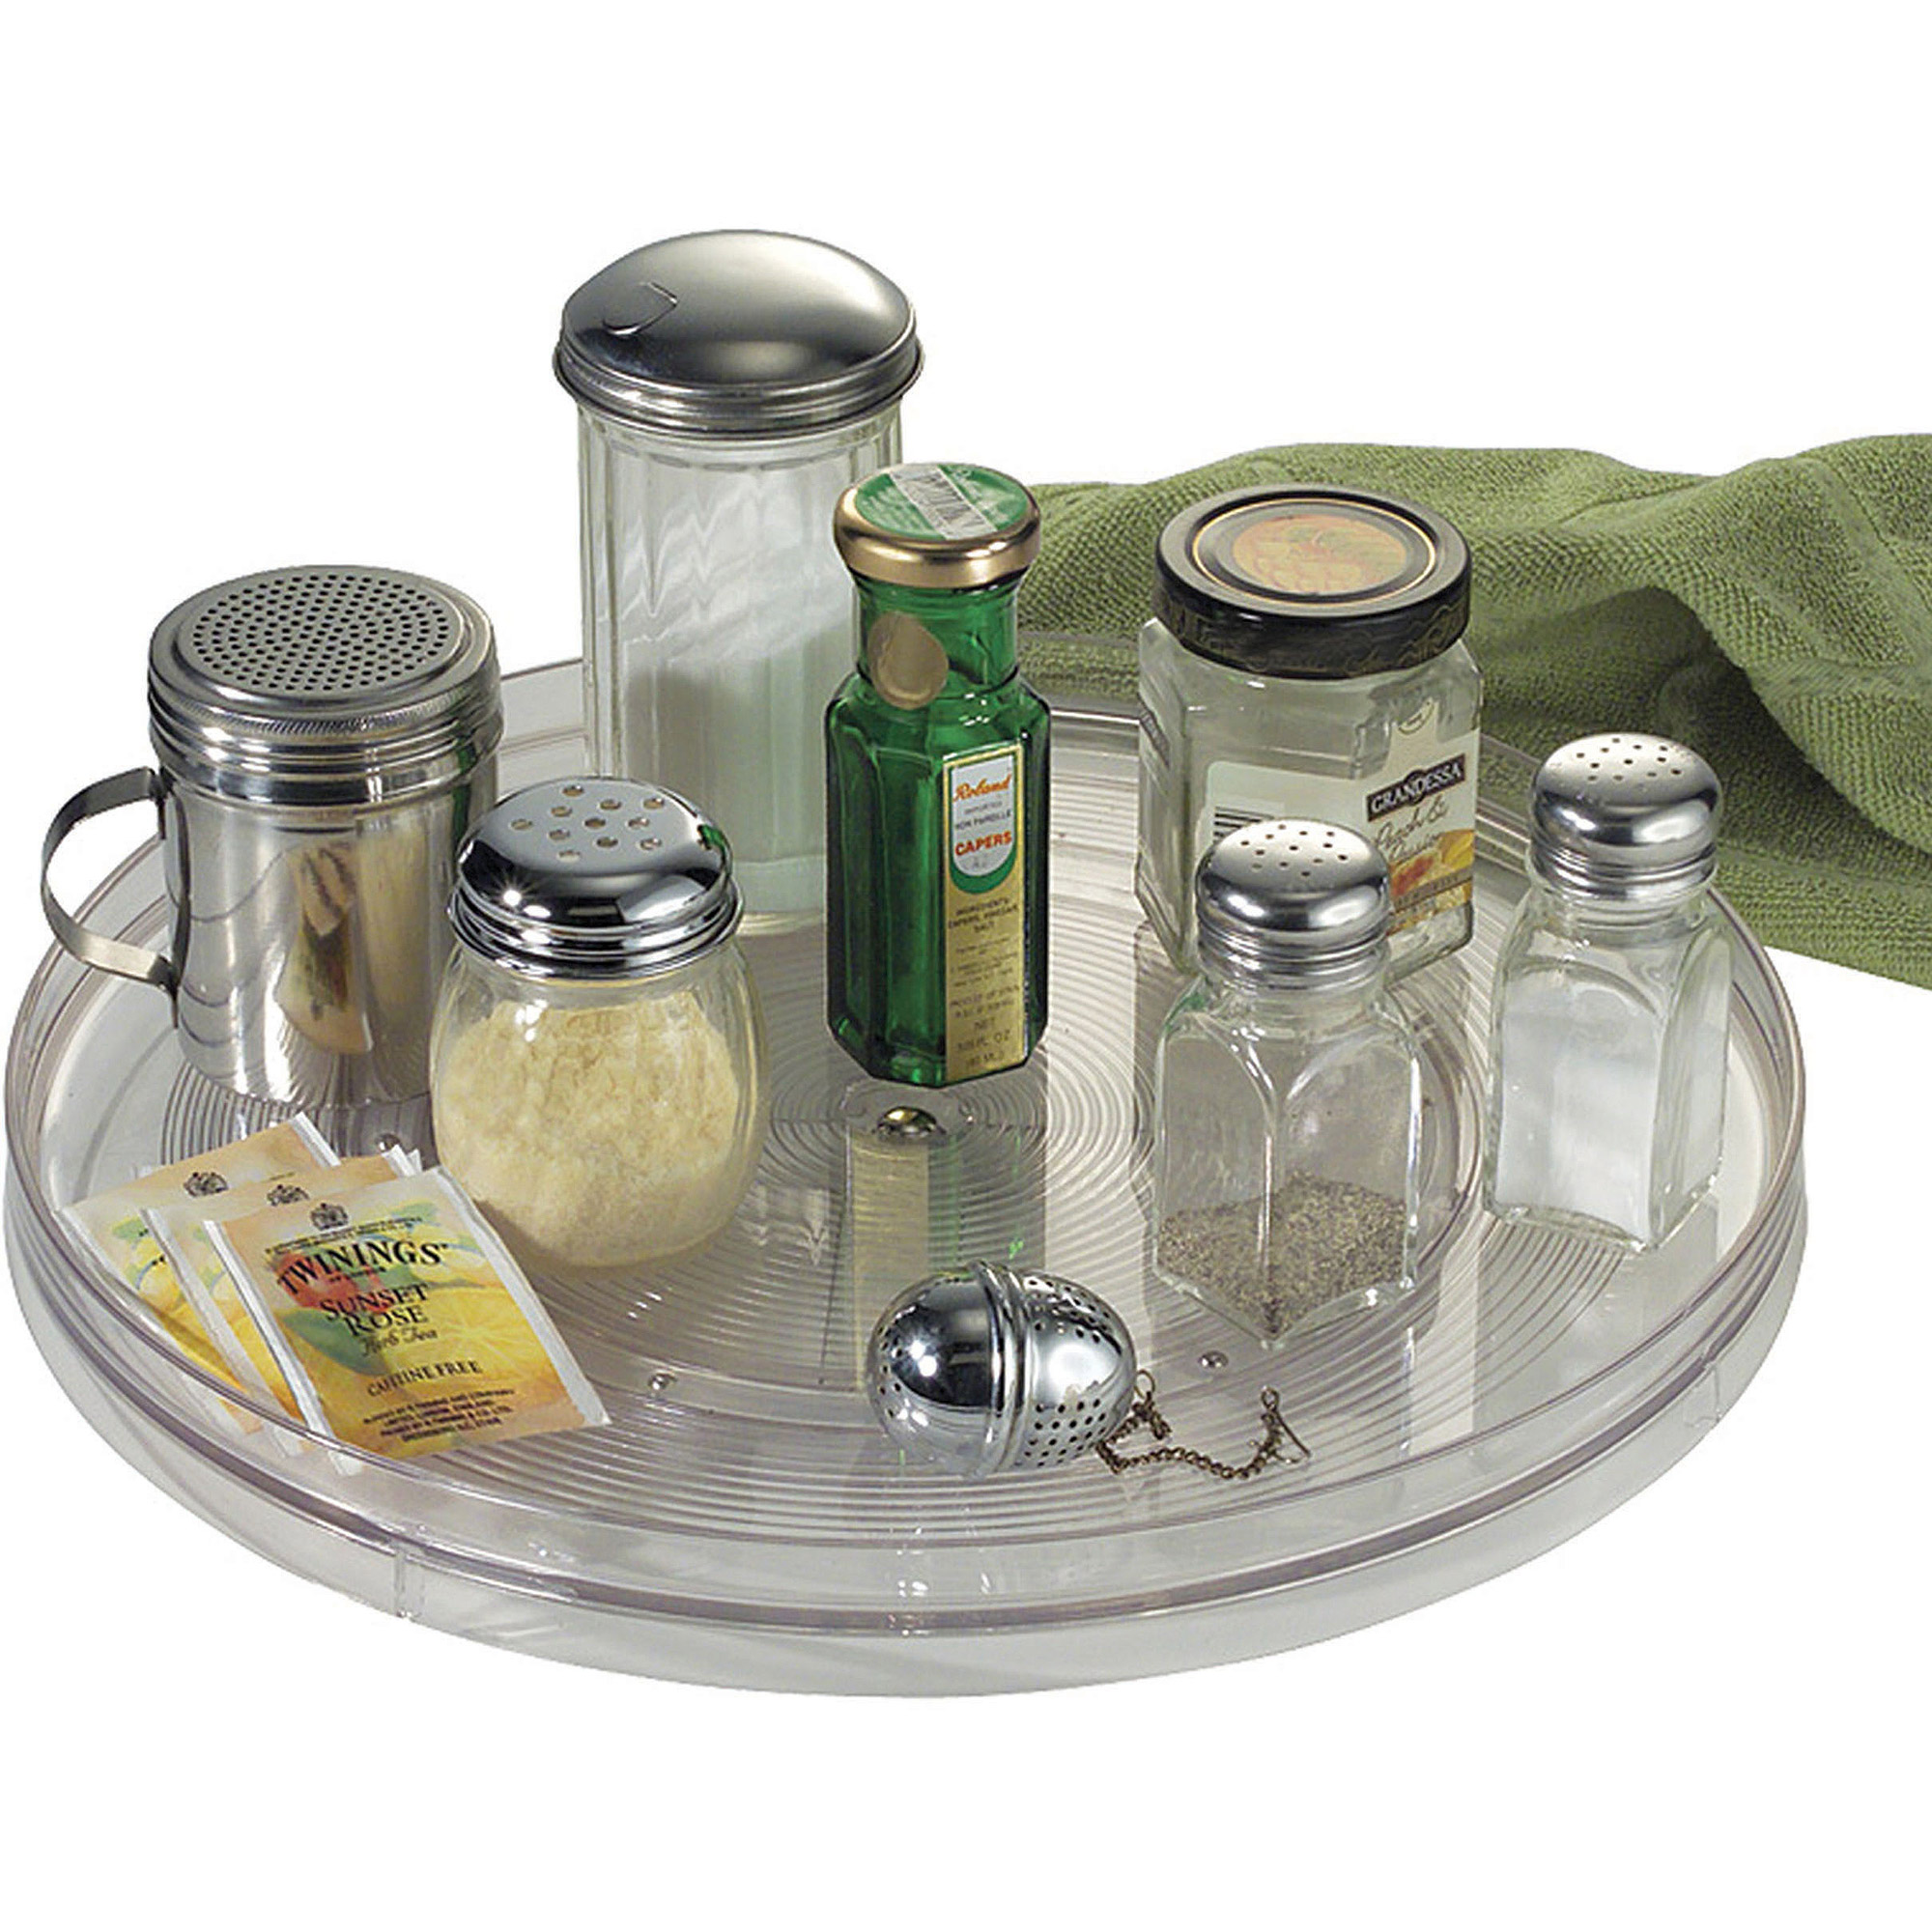 "InterDesign Linus Lazy Susan Turntable Spice Organizer Rack for Kitchen Pantry, Cabinet, Countertops, 14"", Clear"